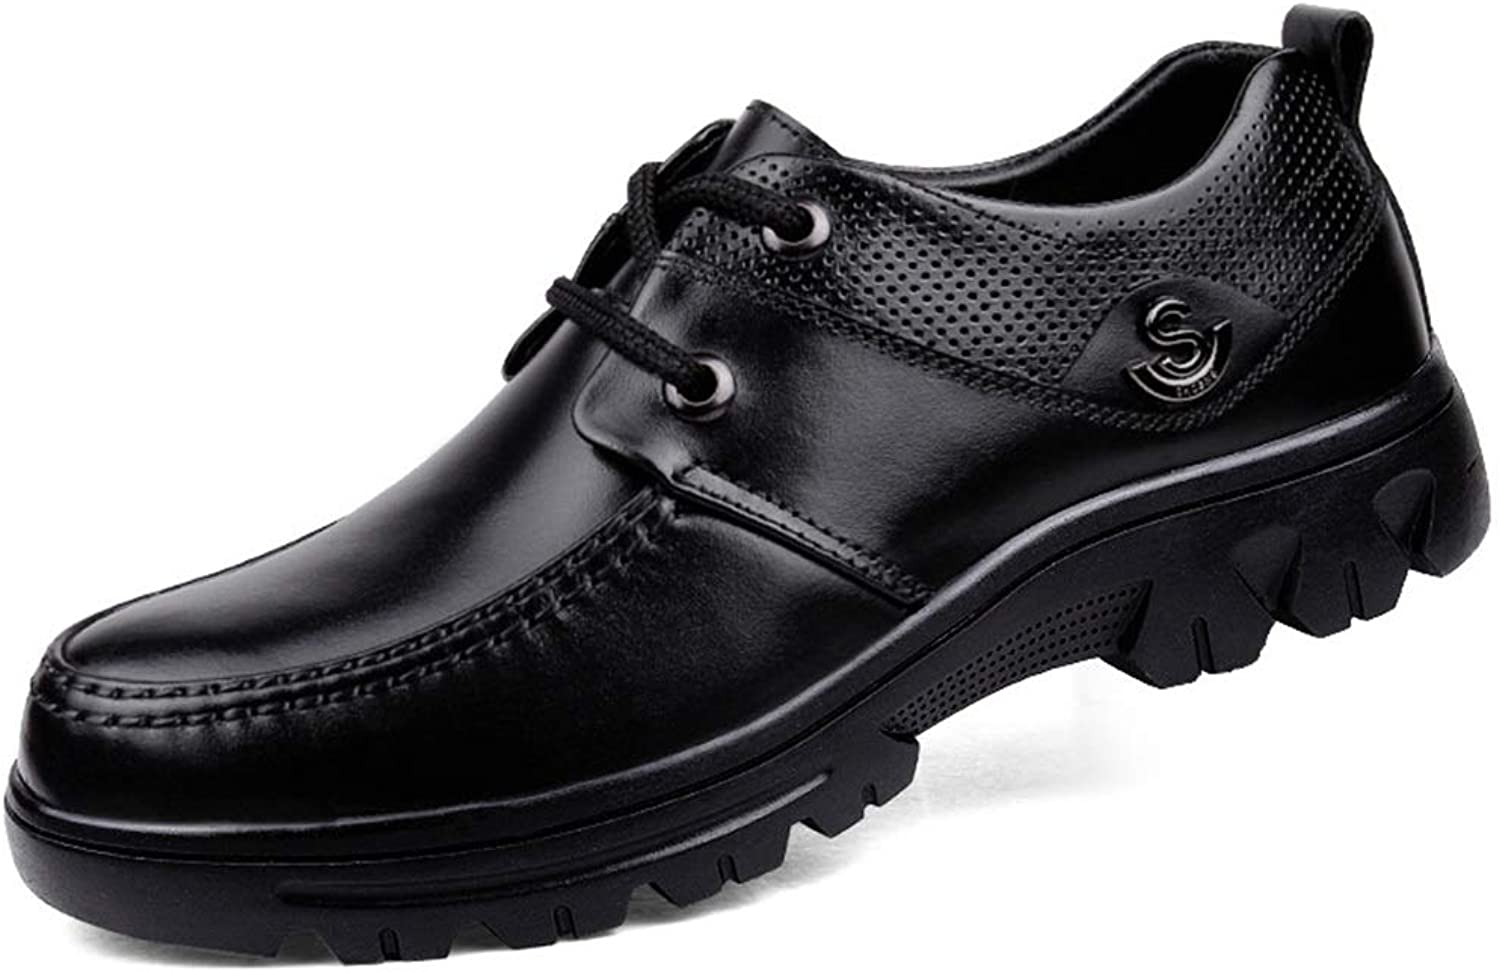 Men's shoes, Spring fall New Middle-aged Dad shoes Leather Large Size Business Casual shoes Man Anti-Slip Leather shoes (color   Black, Size   46)